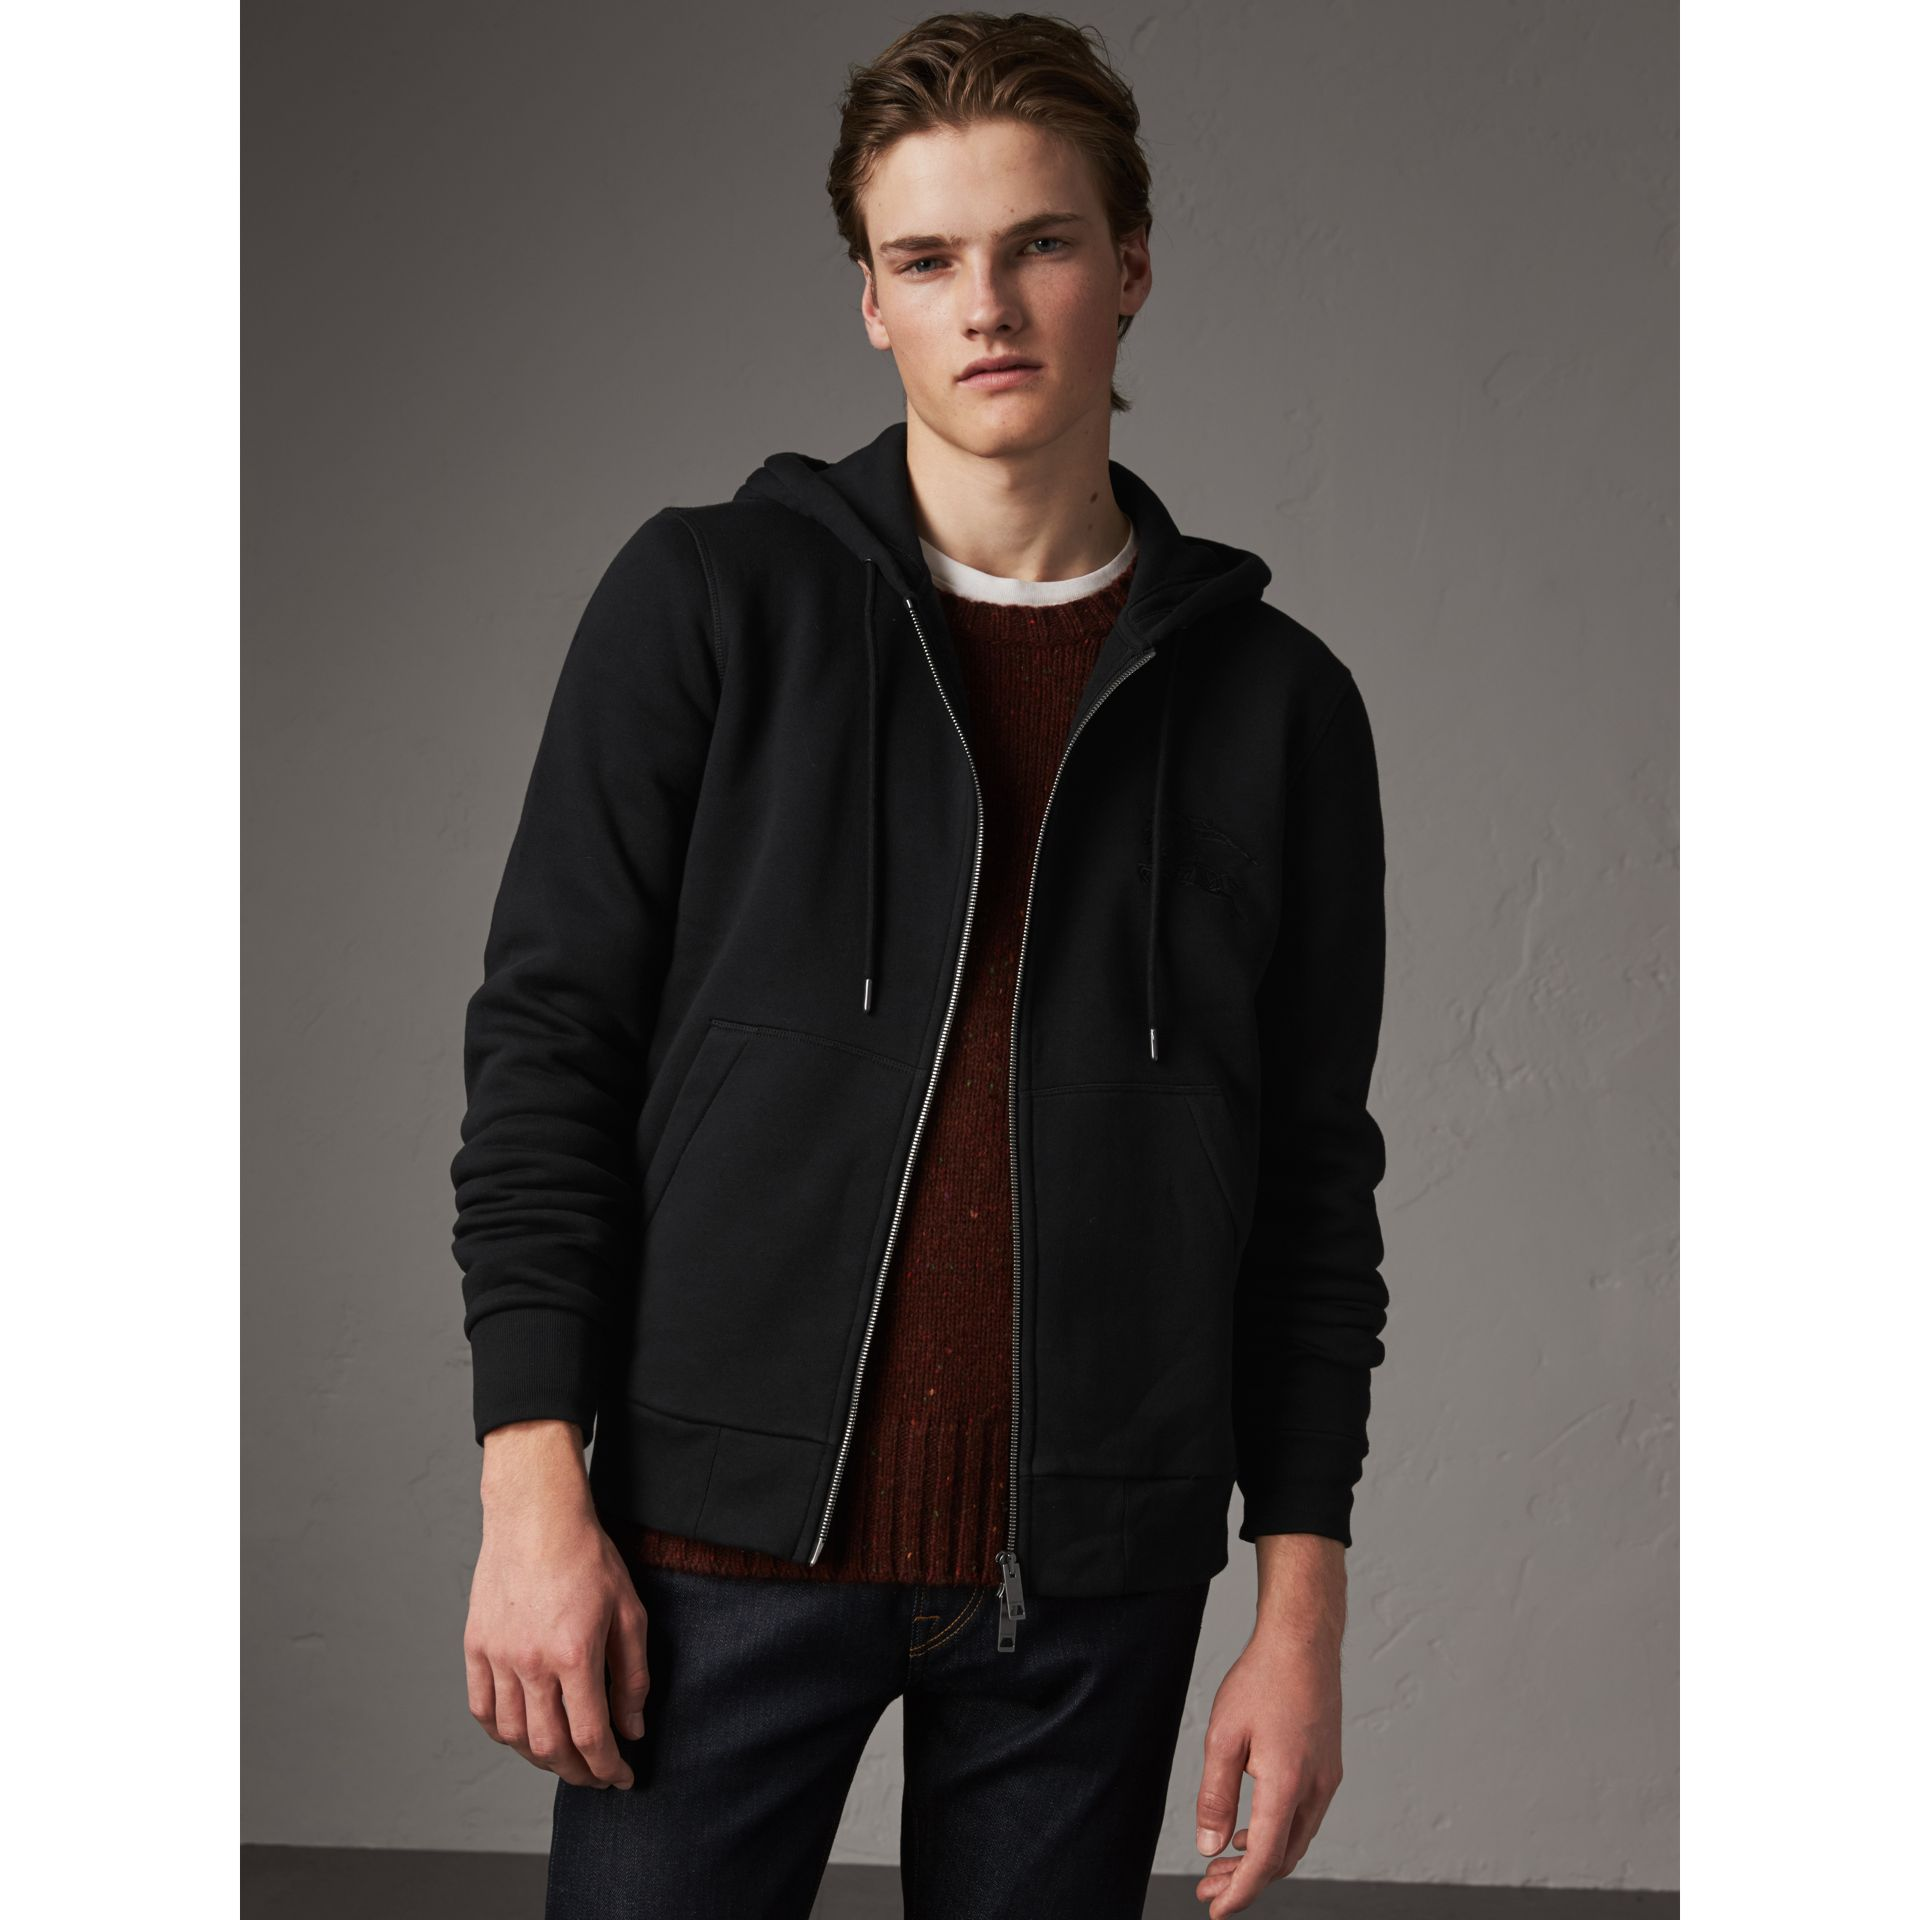 Equestrian Knight Device Jersey Hooded Zip-front Top in Black - Men | Burberry United Kingdom - gallery image 1